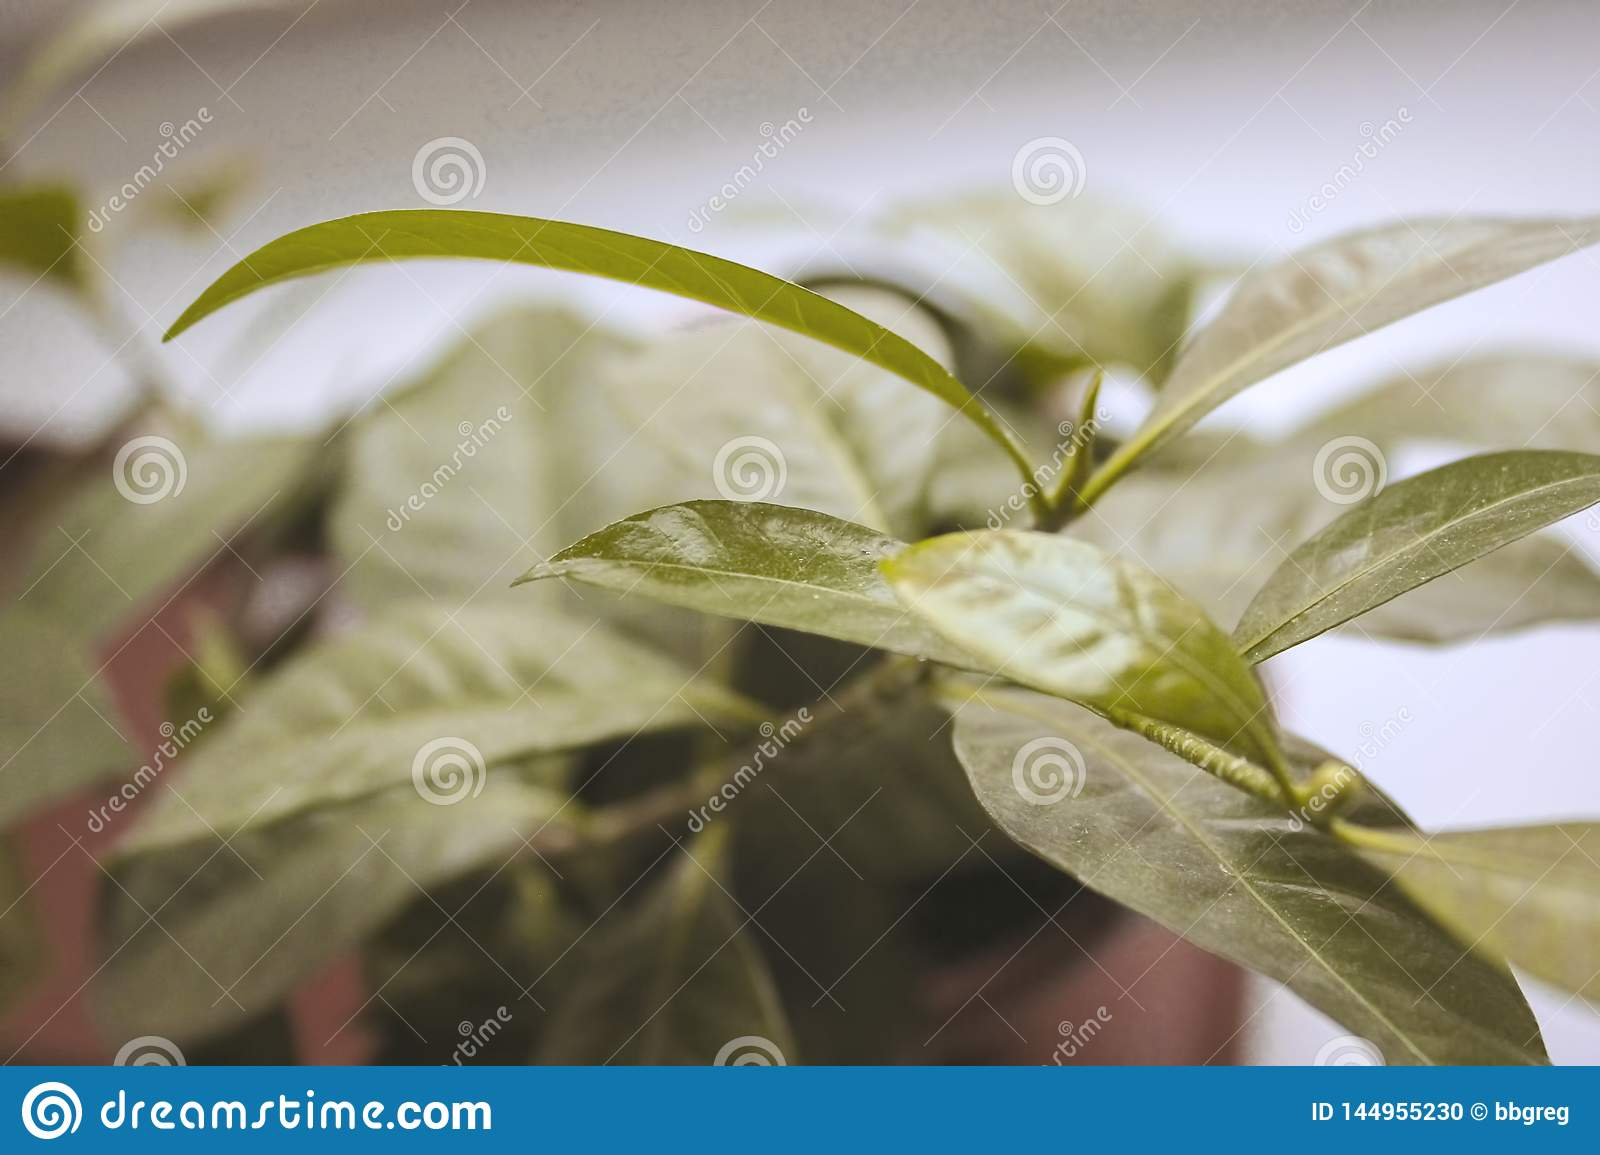 Large Leaves Indoor Plant Closeup In Soft Blurred Style For Background Stock Photo Image Of Colorful Home 144955230